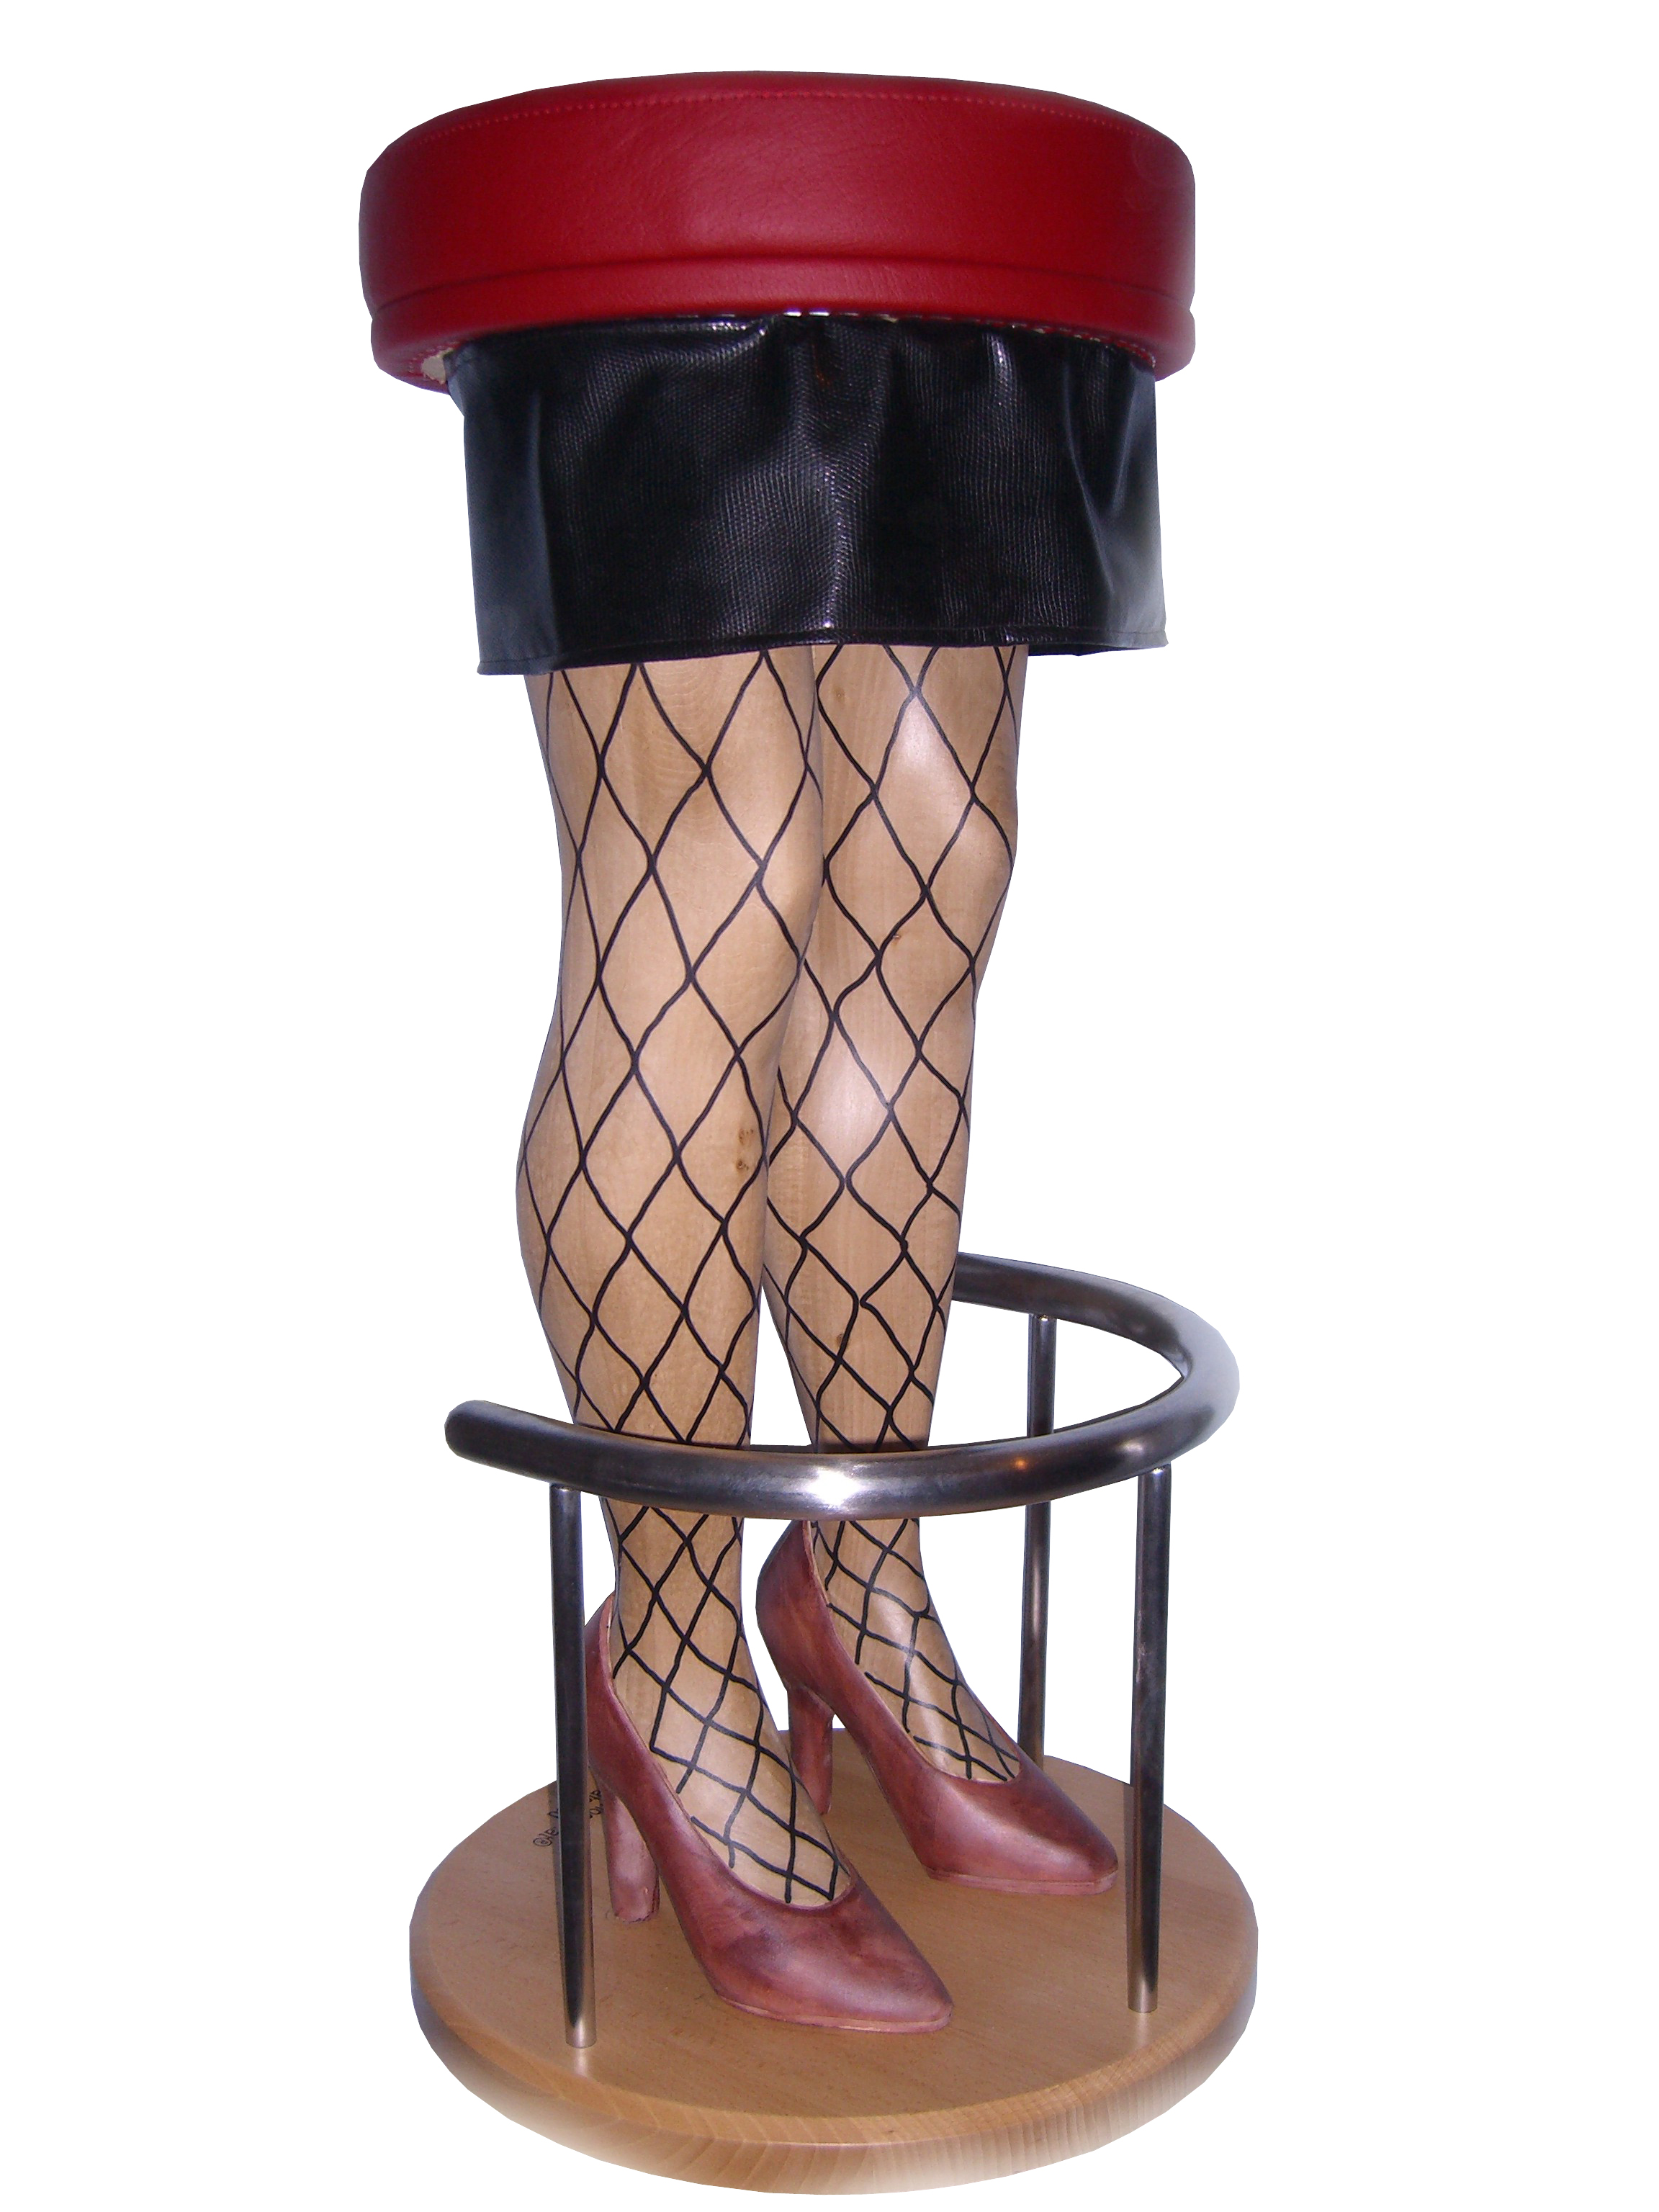 Choosing the Right Bar Stools for your Bar or Nightclub : Bar Stools Womans Legs from nightclubpros.com size 2304 x 3072 jpeg 1685kB